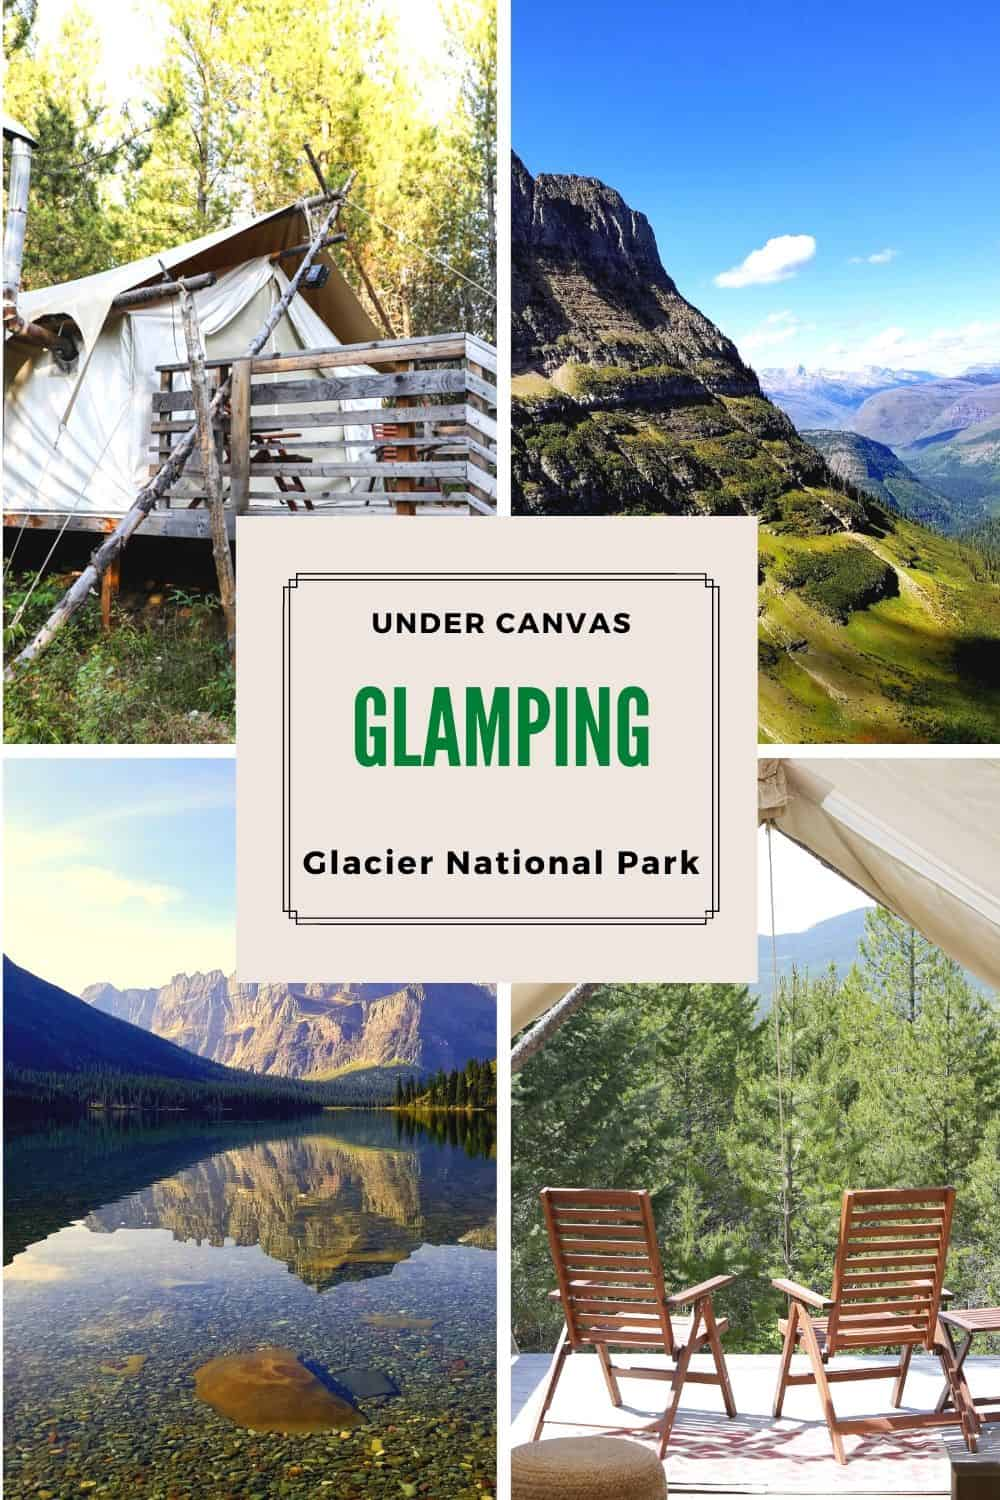 Looking for a unique home base for your Glacier National Park adventure? Book a stay at Under Canvas Glamping Glacier National Park